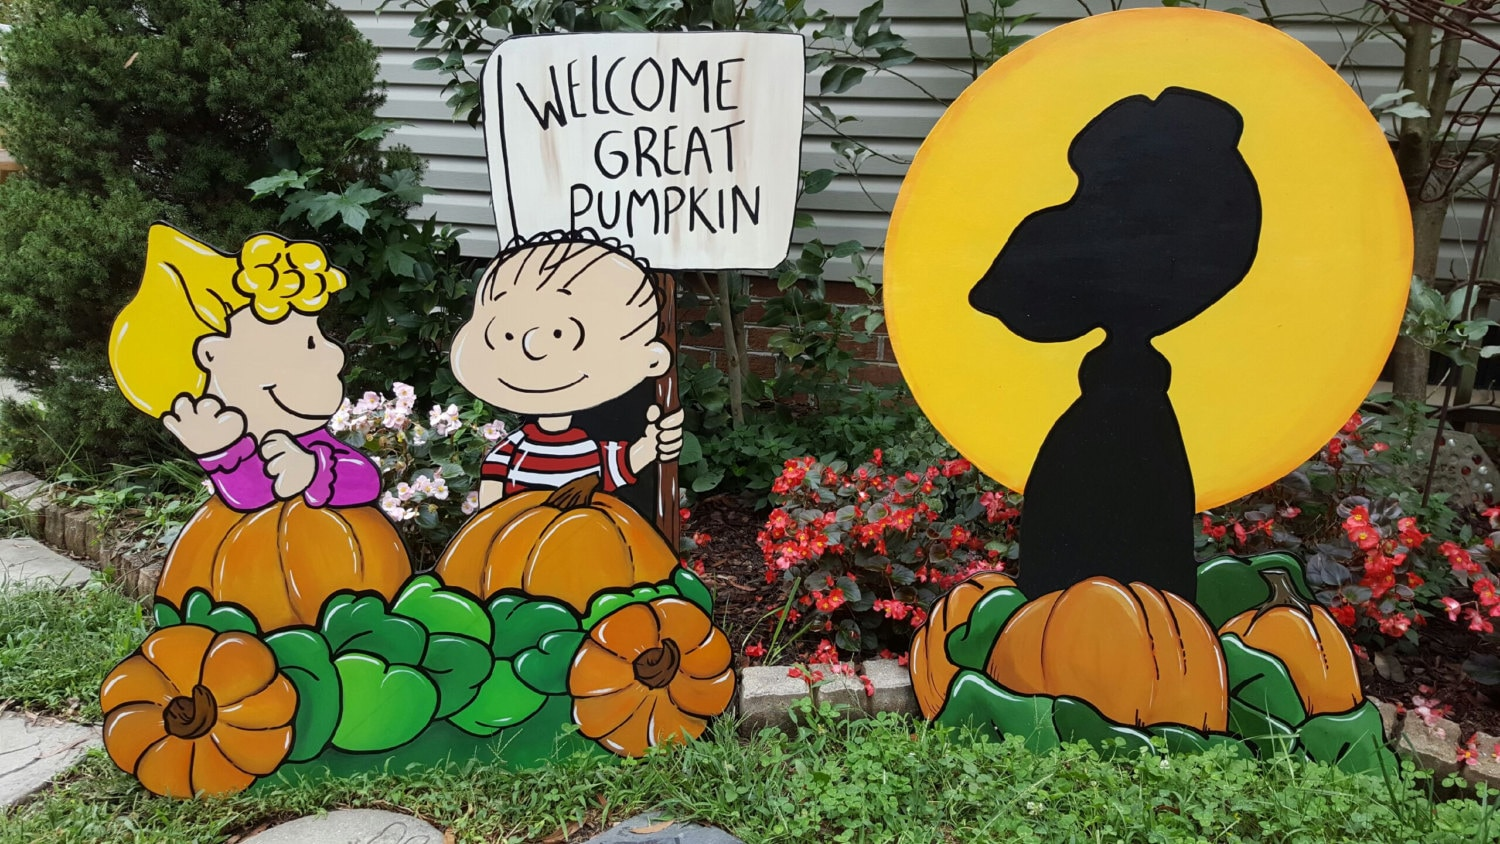 peanuts halloween charlie brown yard art decorations its the great pumpkin charlie brown halloween yard art